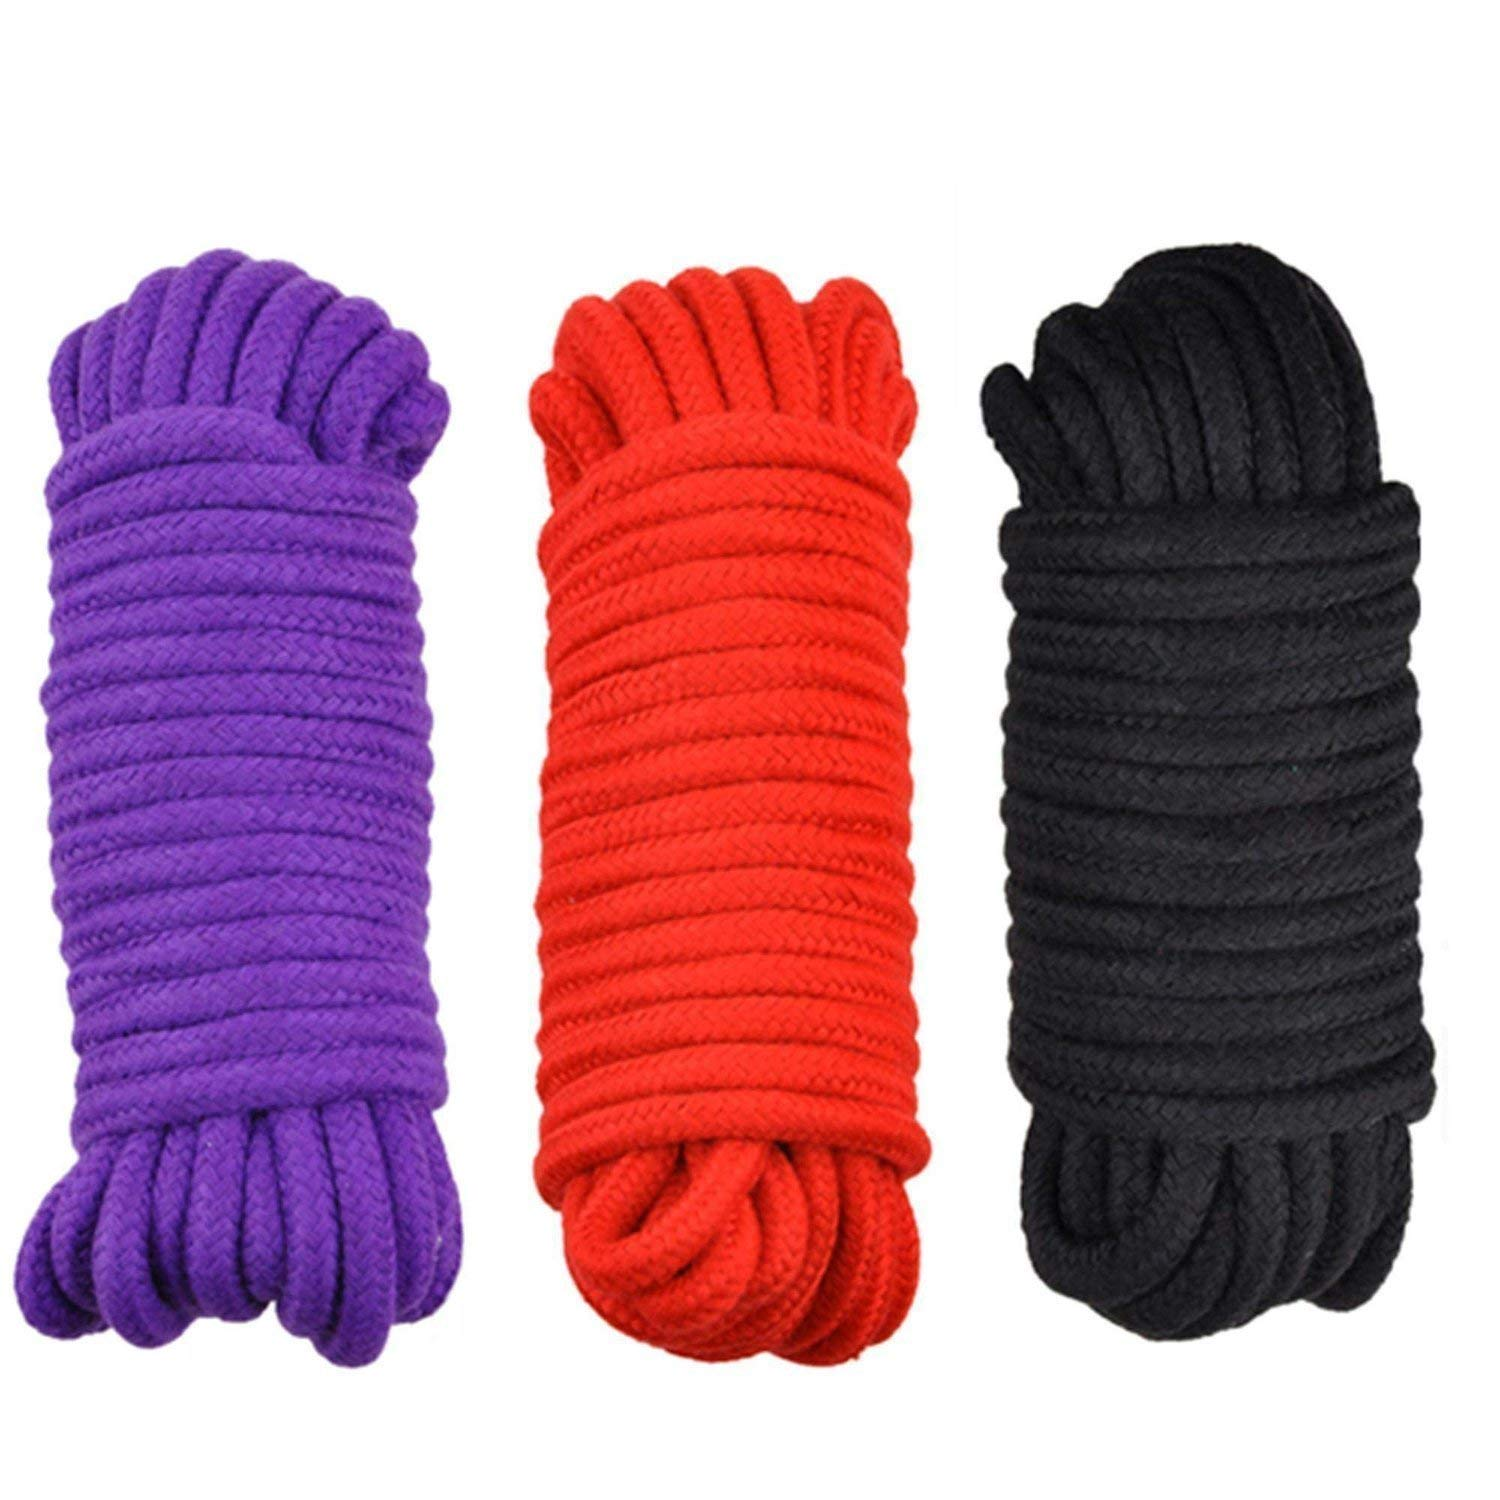 YierM Soft Twisted Cotton Rope 32 Feet(10M) Absolute Restraints Rope (3 Pack)